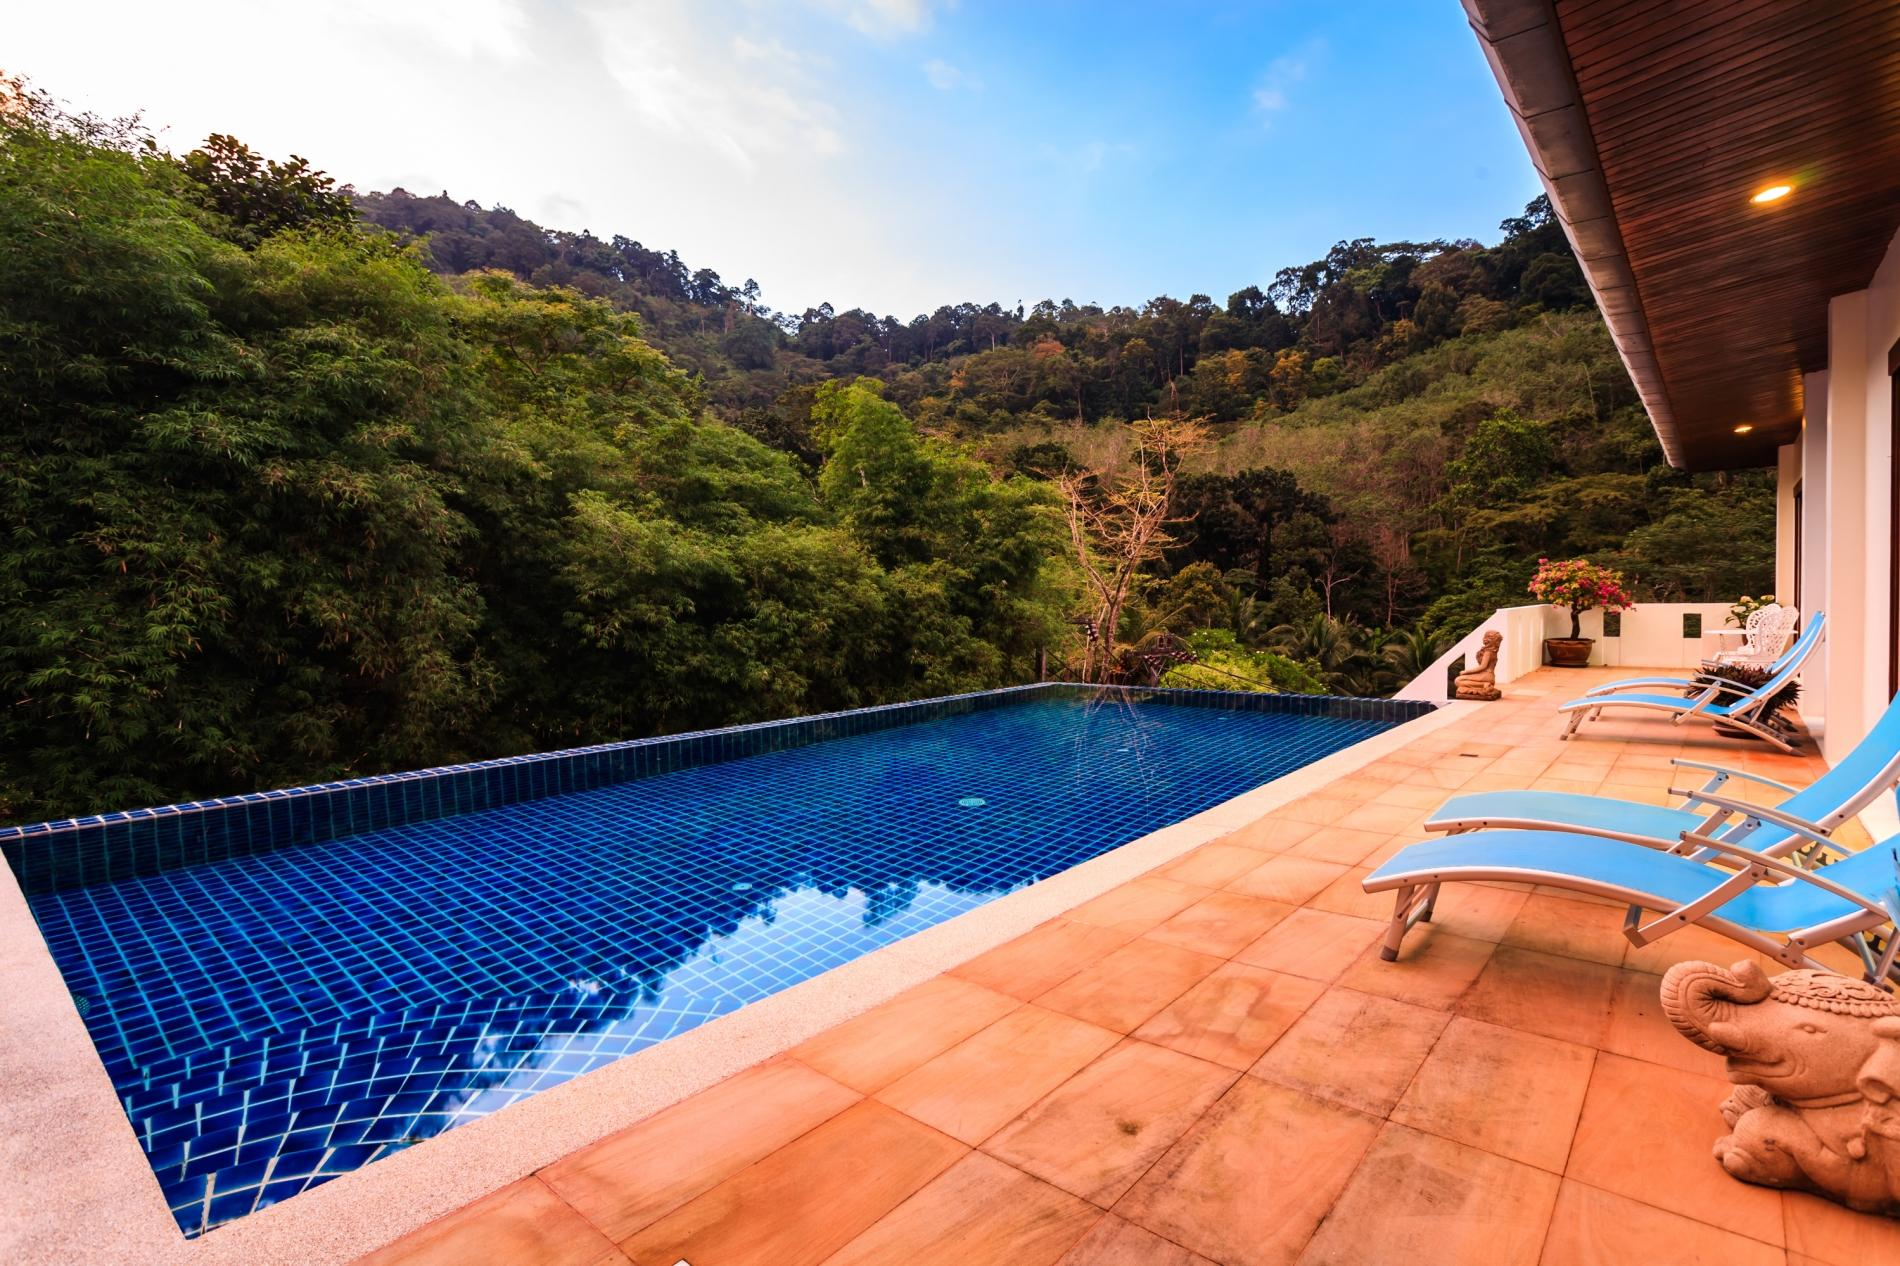 Apartment BBK -  Private pool waterfall jungle villa in Kathu - FREE MOTORBIKE photo 20544775